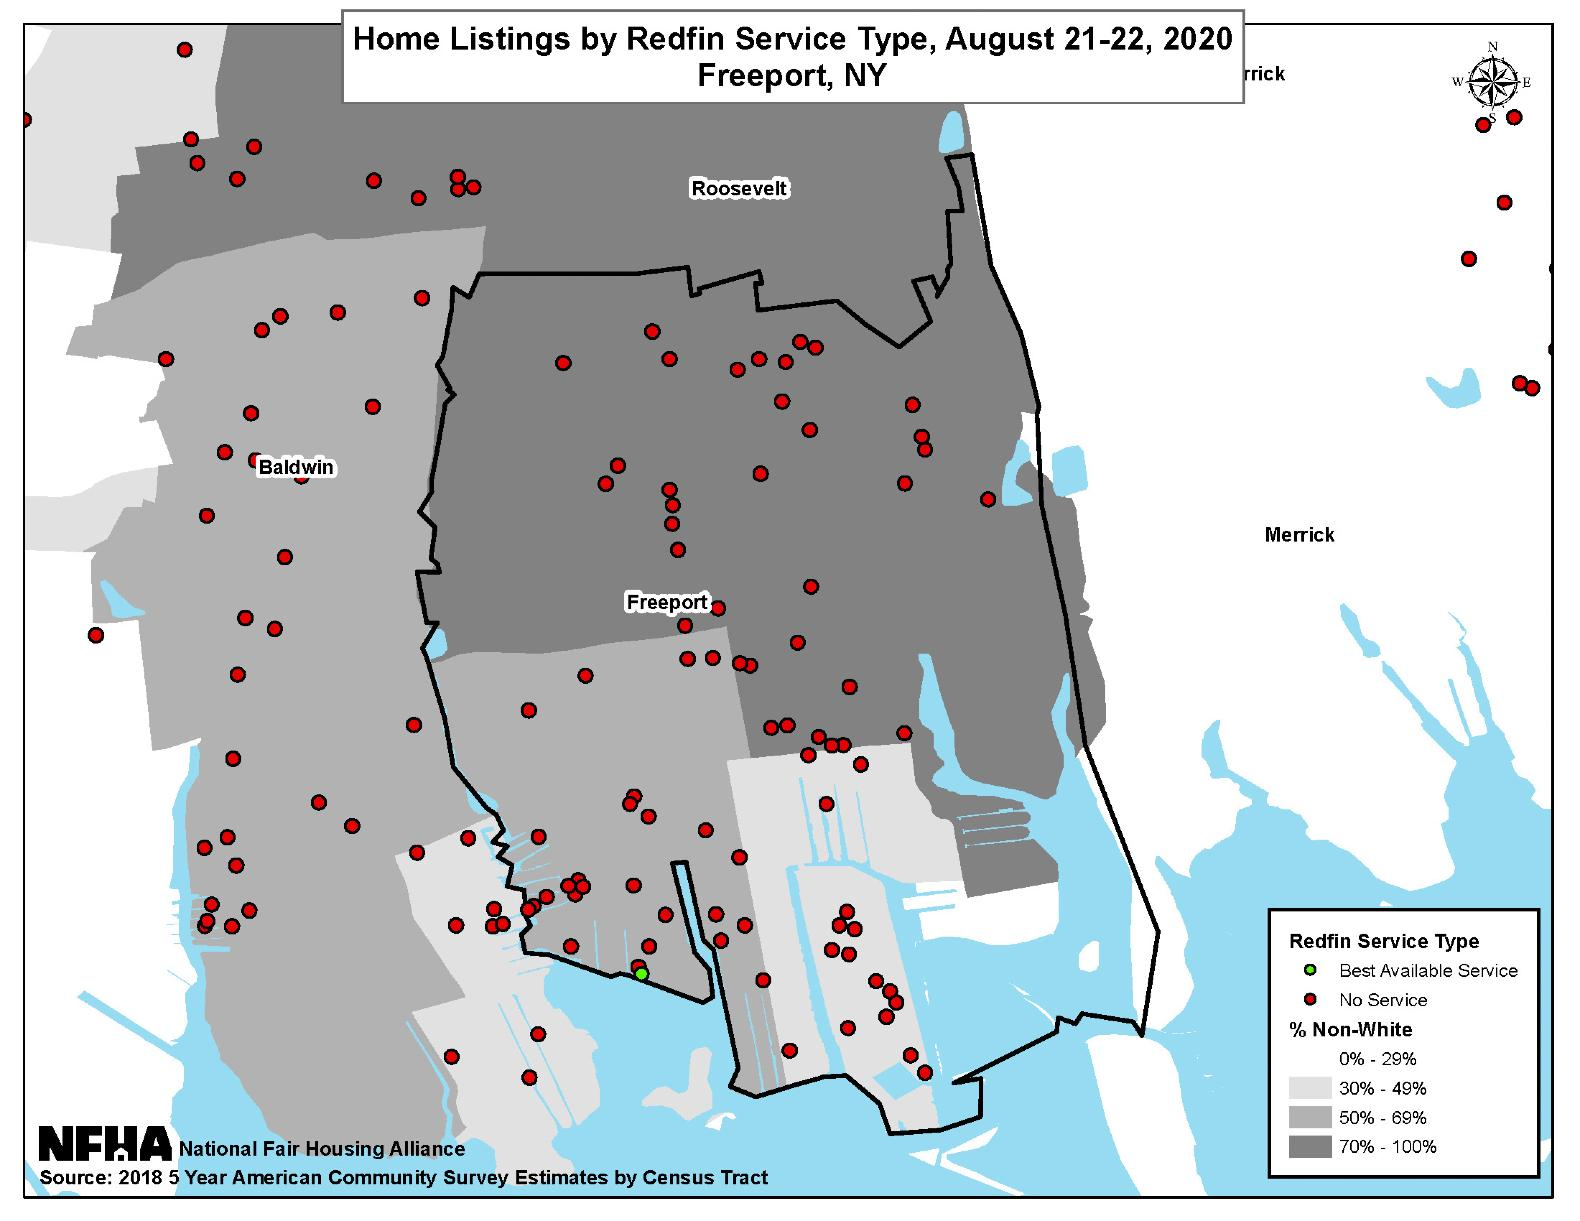 Home Listings by Redfin Service Type, Freeport, NY August 21-22, 2020